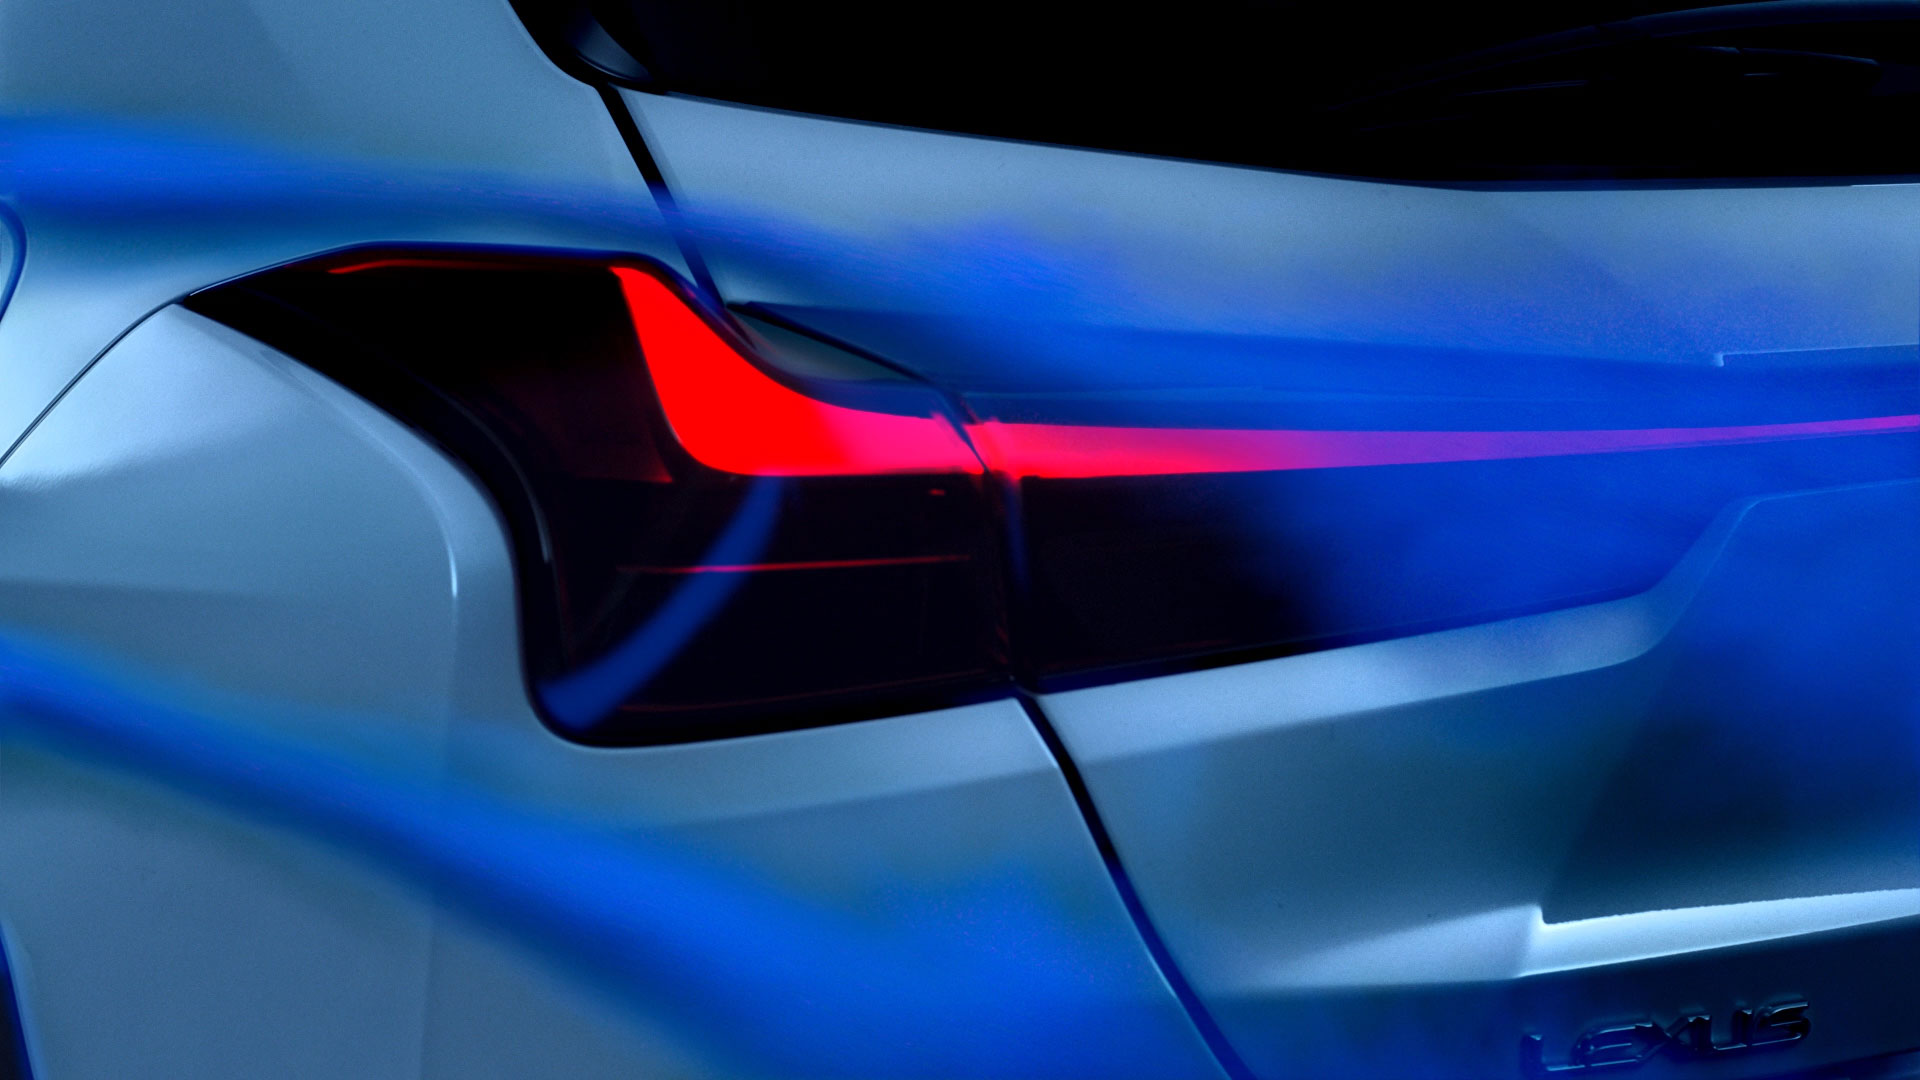 2018 lexus ux interactive design hotspot rear lamp